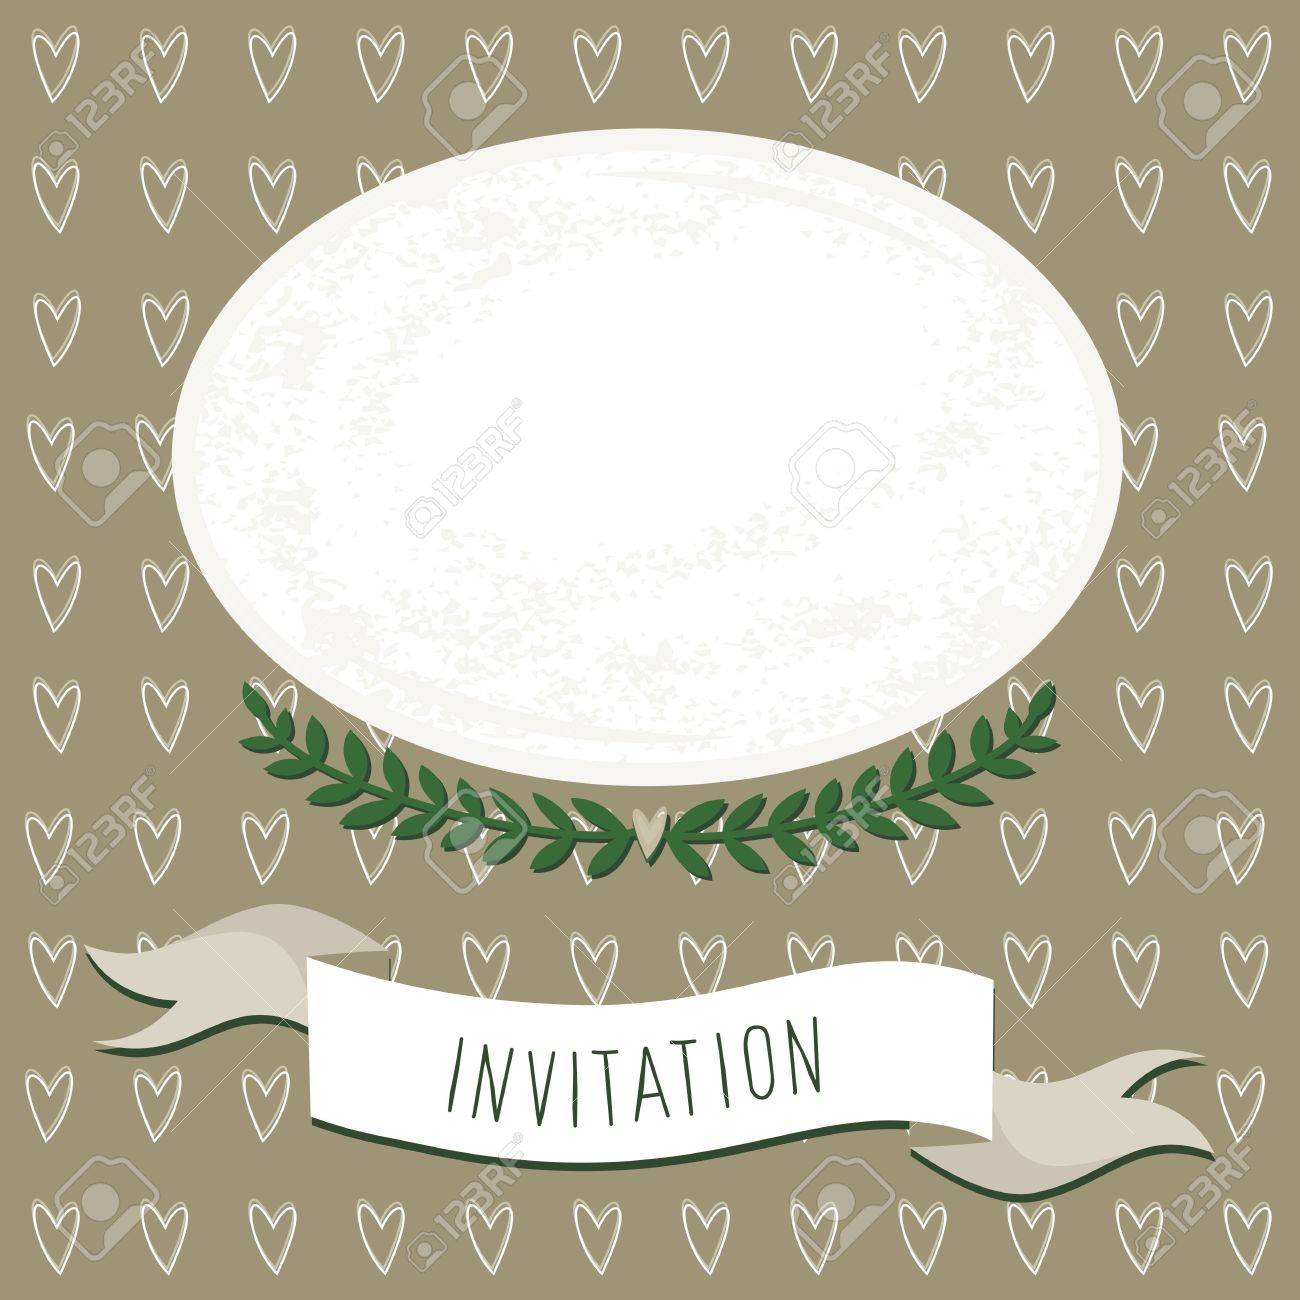 Wedding Invitation Blank Card With Delicate Grunge Oval Portrait Place On Brown Heart Patterned Background